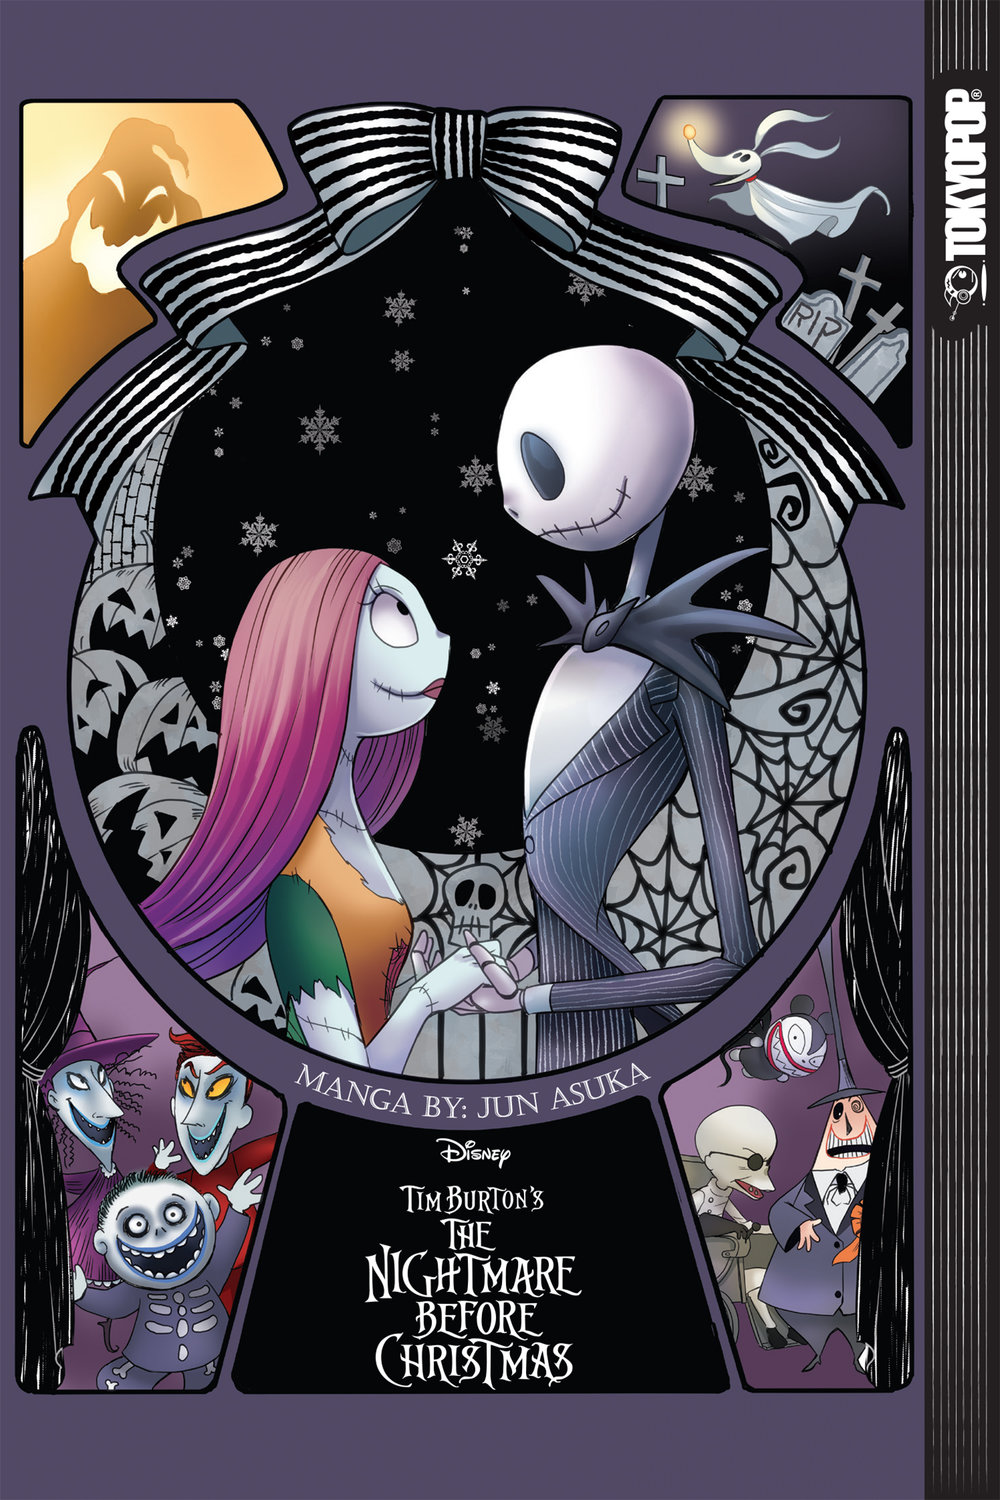 disney tim burtons the nightmare before christmas variant cover tokyopop - Tim Burtons Nightmare Before Christmas